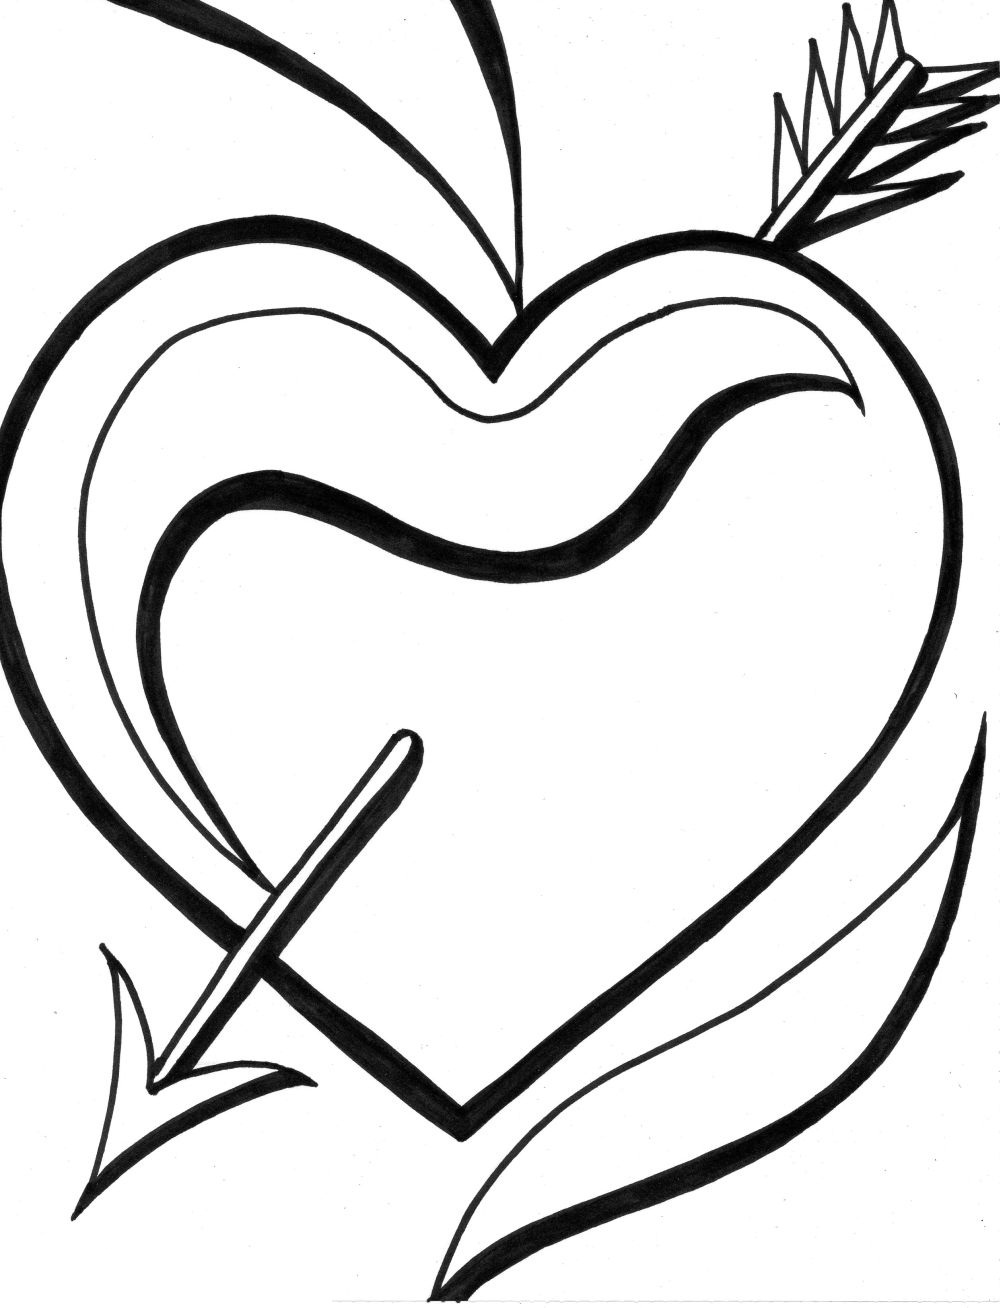 hearts coloring page free printable heart coloring page ausdruckbare coloring page hearts